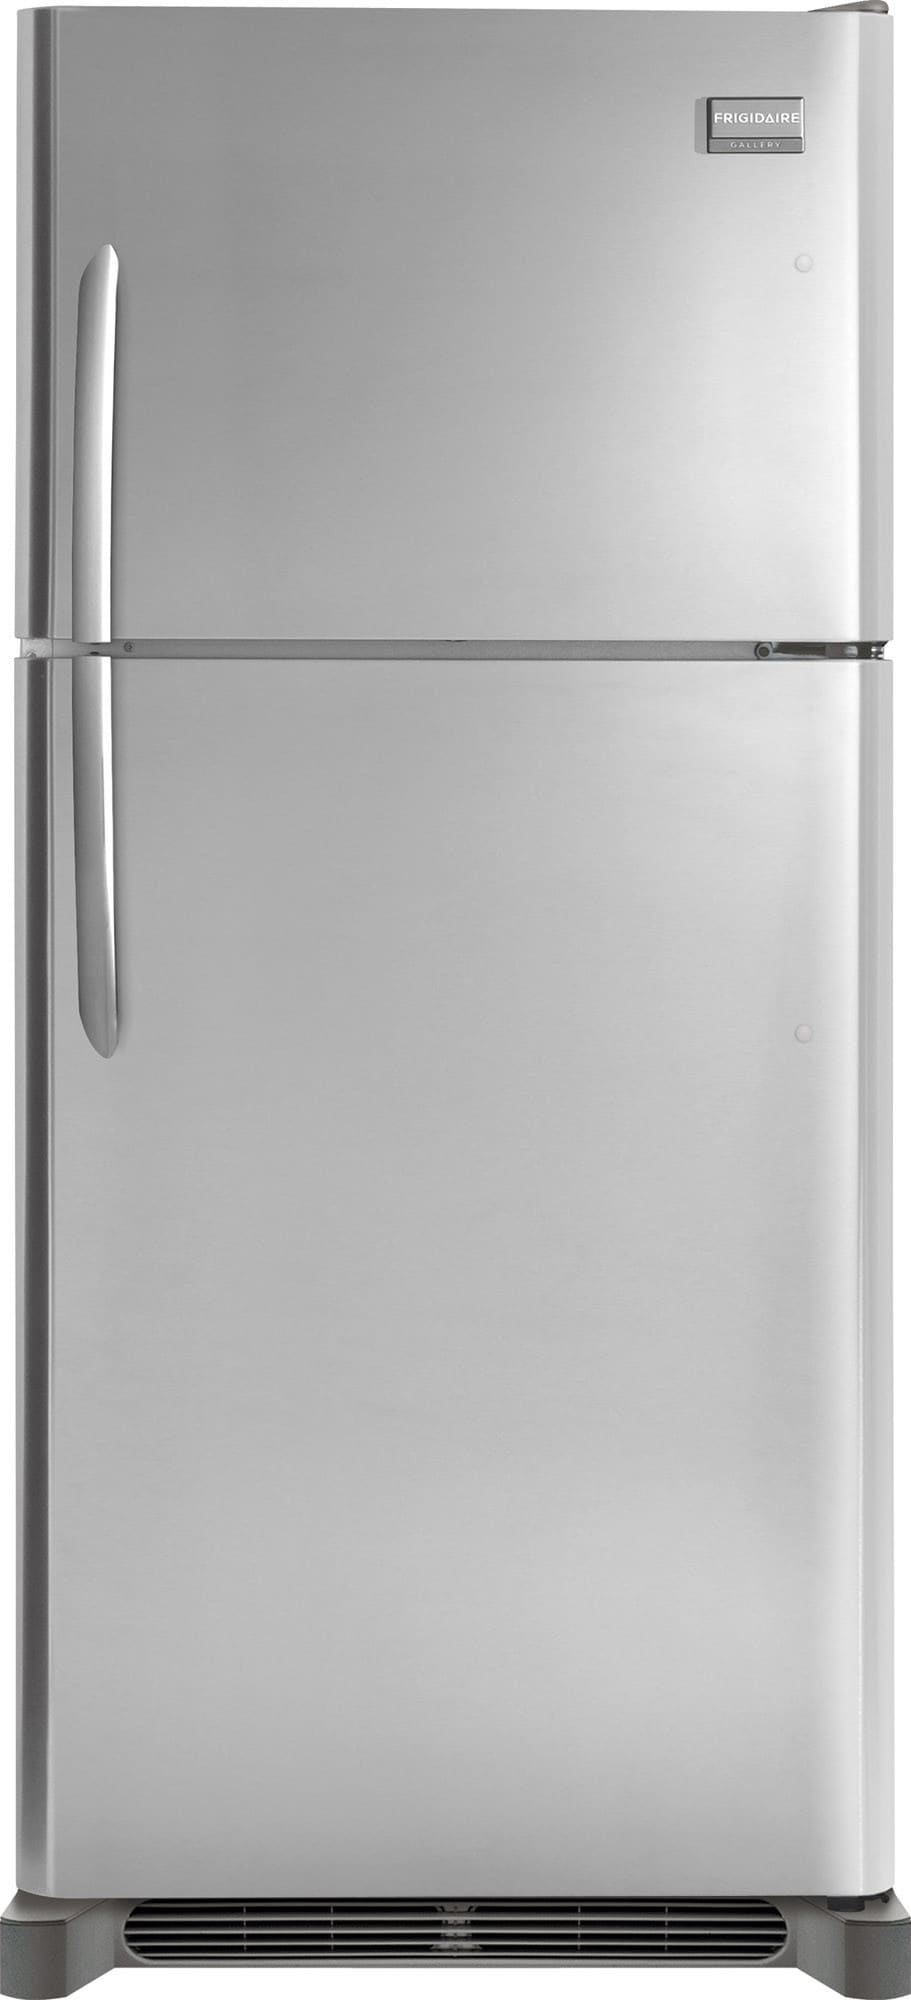 Stainless Steel Refridgerators Frigidaire Fght1846qf 30 Inch Top Freezer Refrigerator With 181